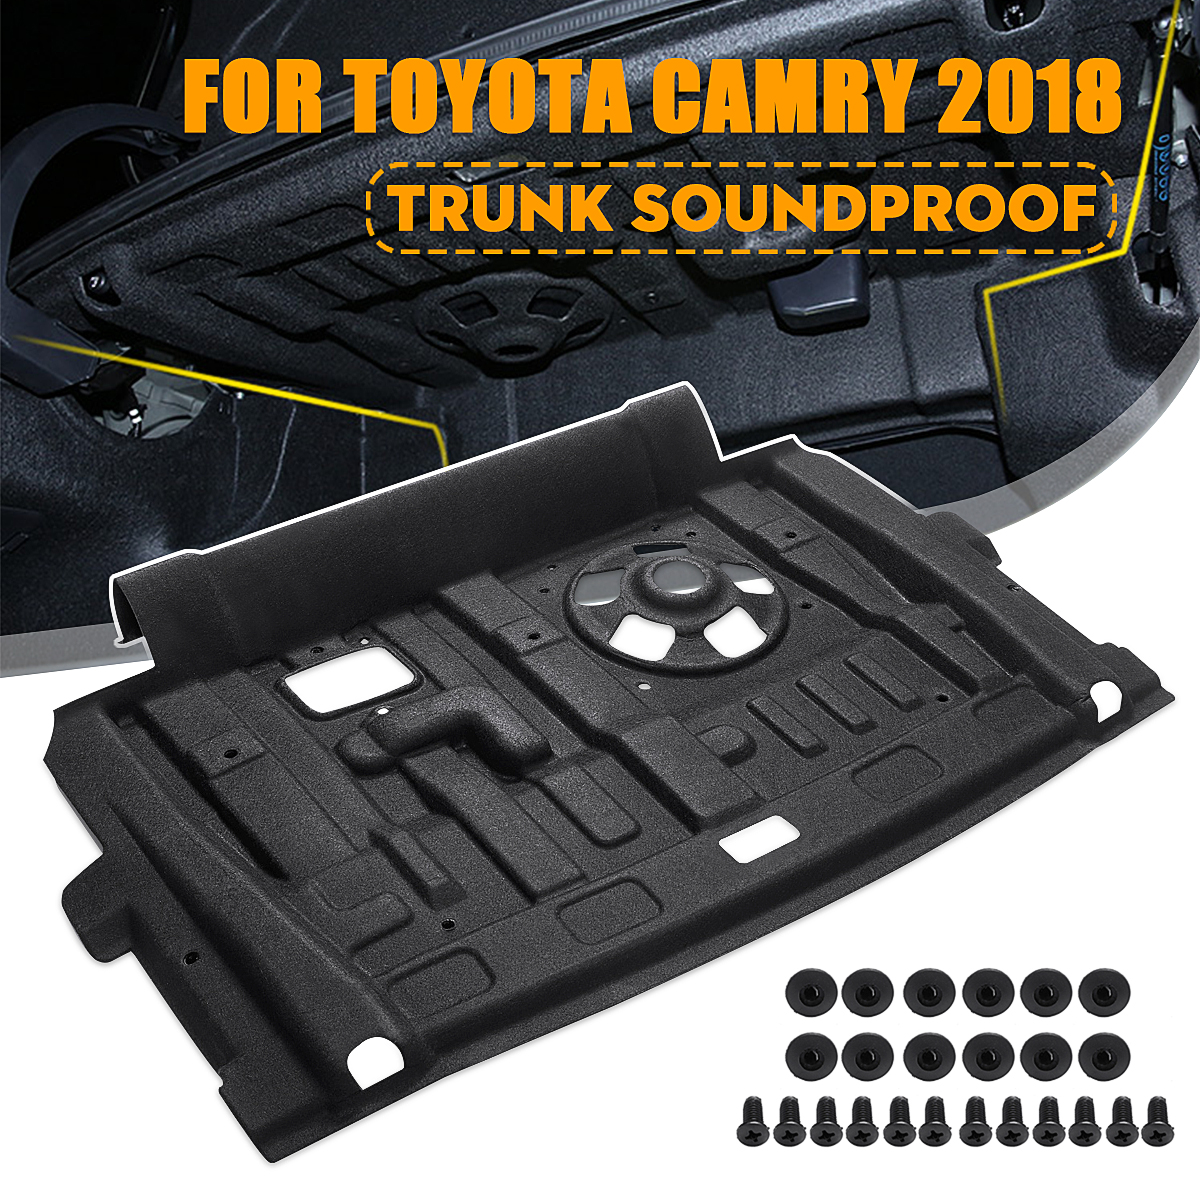 Car Rear Trunk Soundproof Cotton Mat Sound Proof Deadening Protective Mat for Toyota Camry 2018 Car Accessories